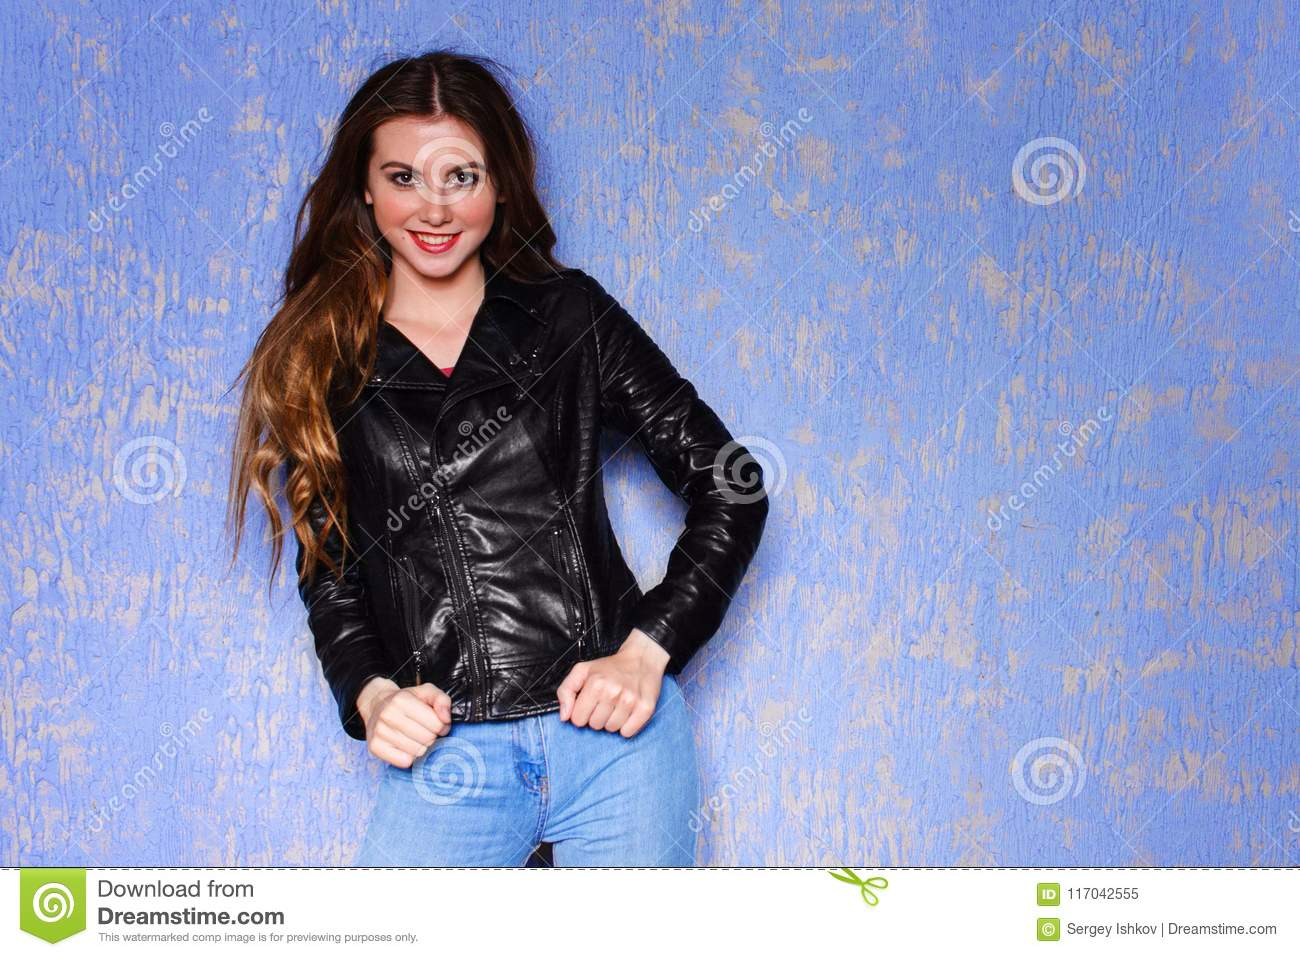 Fashion Model Young Smile Woman In Black Leather Jacket Punk Rock